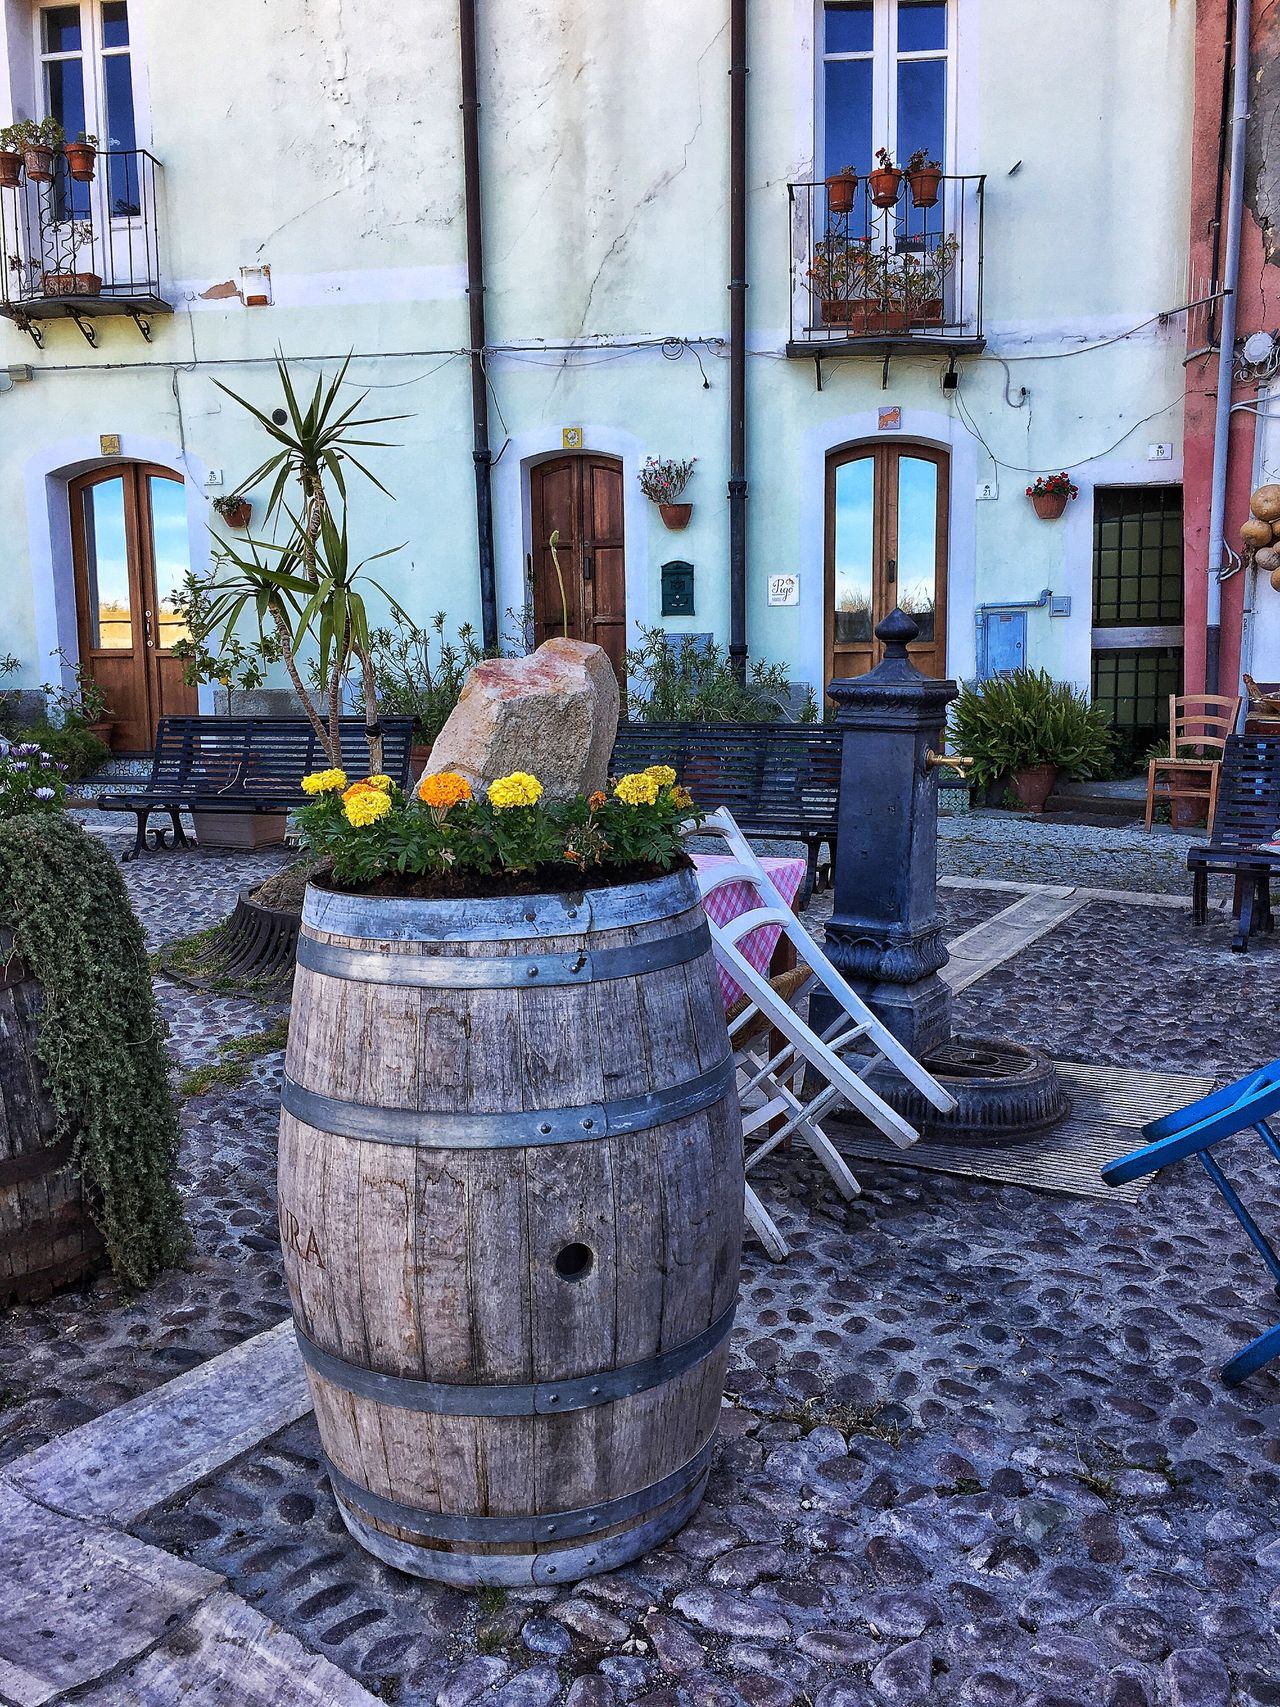 Building Exterior Architecture Built Structure Plant No People Outdoors Residential Building Outside Day EyeEm Best Shots EyeEmBestPics Eyeemphotography Eyeemphoto EyeEmbestshots EyeEm Best Shots - The Streets Cagliari, Sardinia Cagliari Relax Passeggiata EyeEm Gallery EyeEm Masterclass EyeEm Cagliari Urban City Botte Casteddu Centro Storico Di Cagliari Tranquility